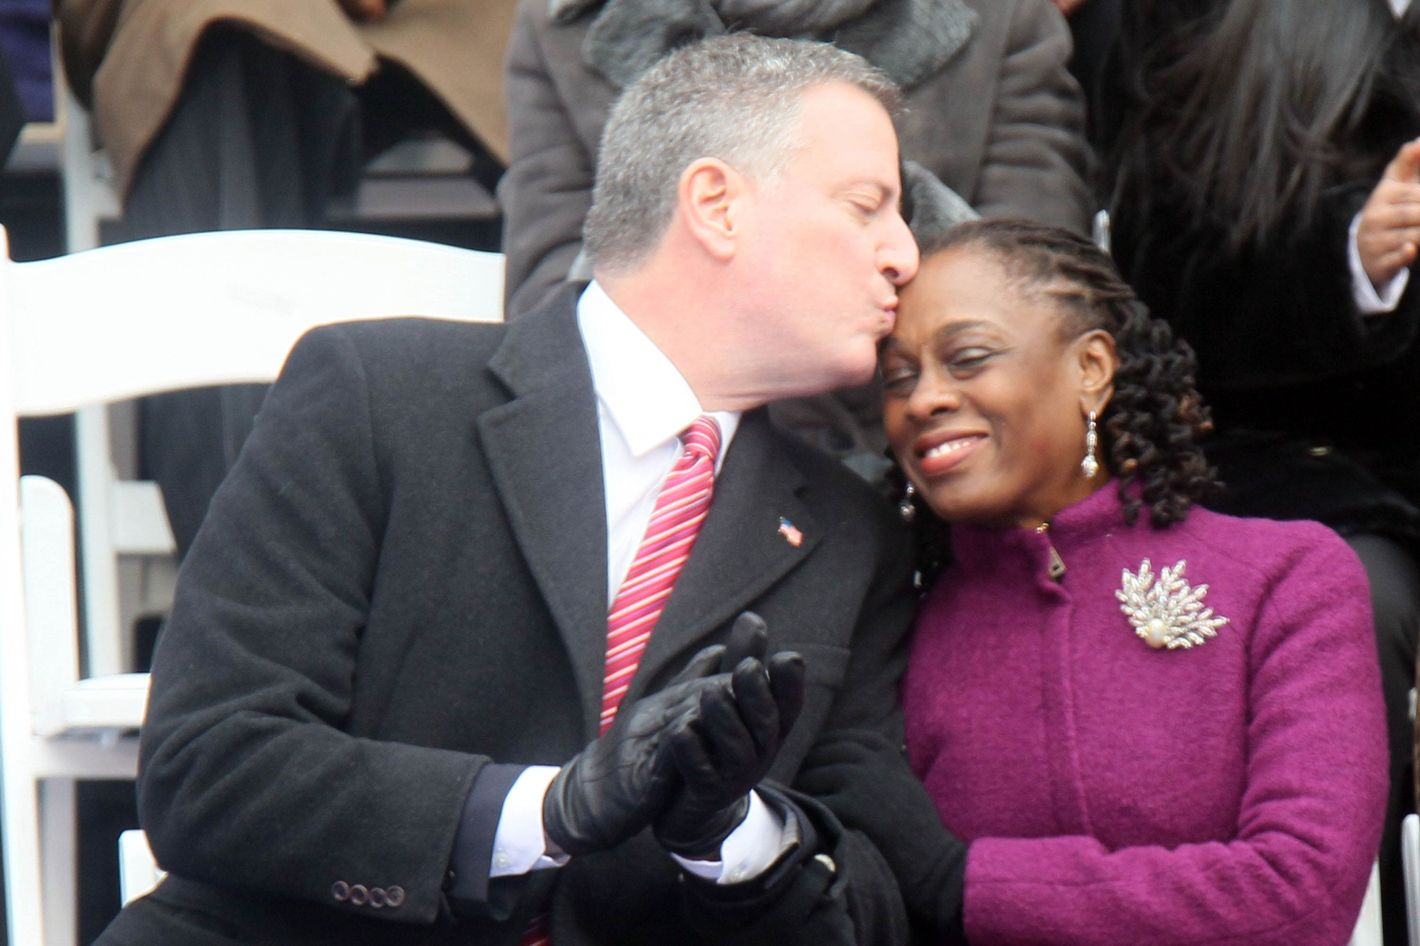 NEW YORK, NY - JANUARY 01: Bill De Blasio and his wife Chirlane De Blasio at the inaguration ceremony on the steps of City Hall making him NYC's 109th mayor on January 1, 2014 in New York City.  (Photo by Steve Sands/WireImage)